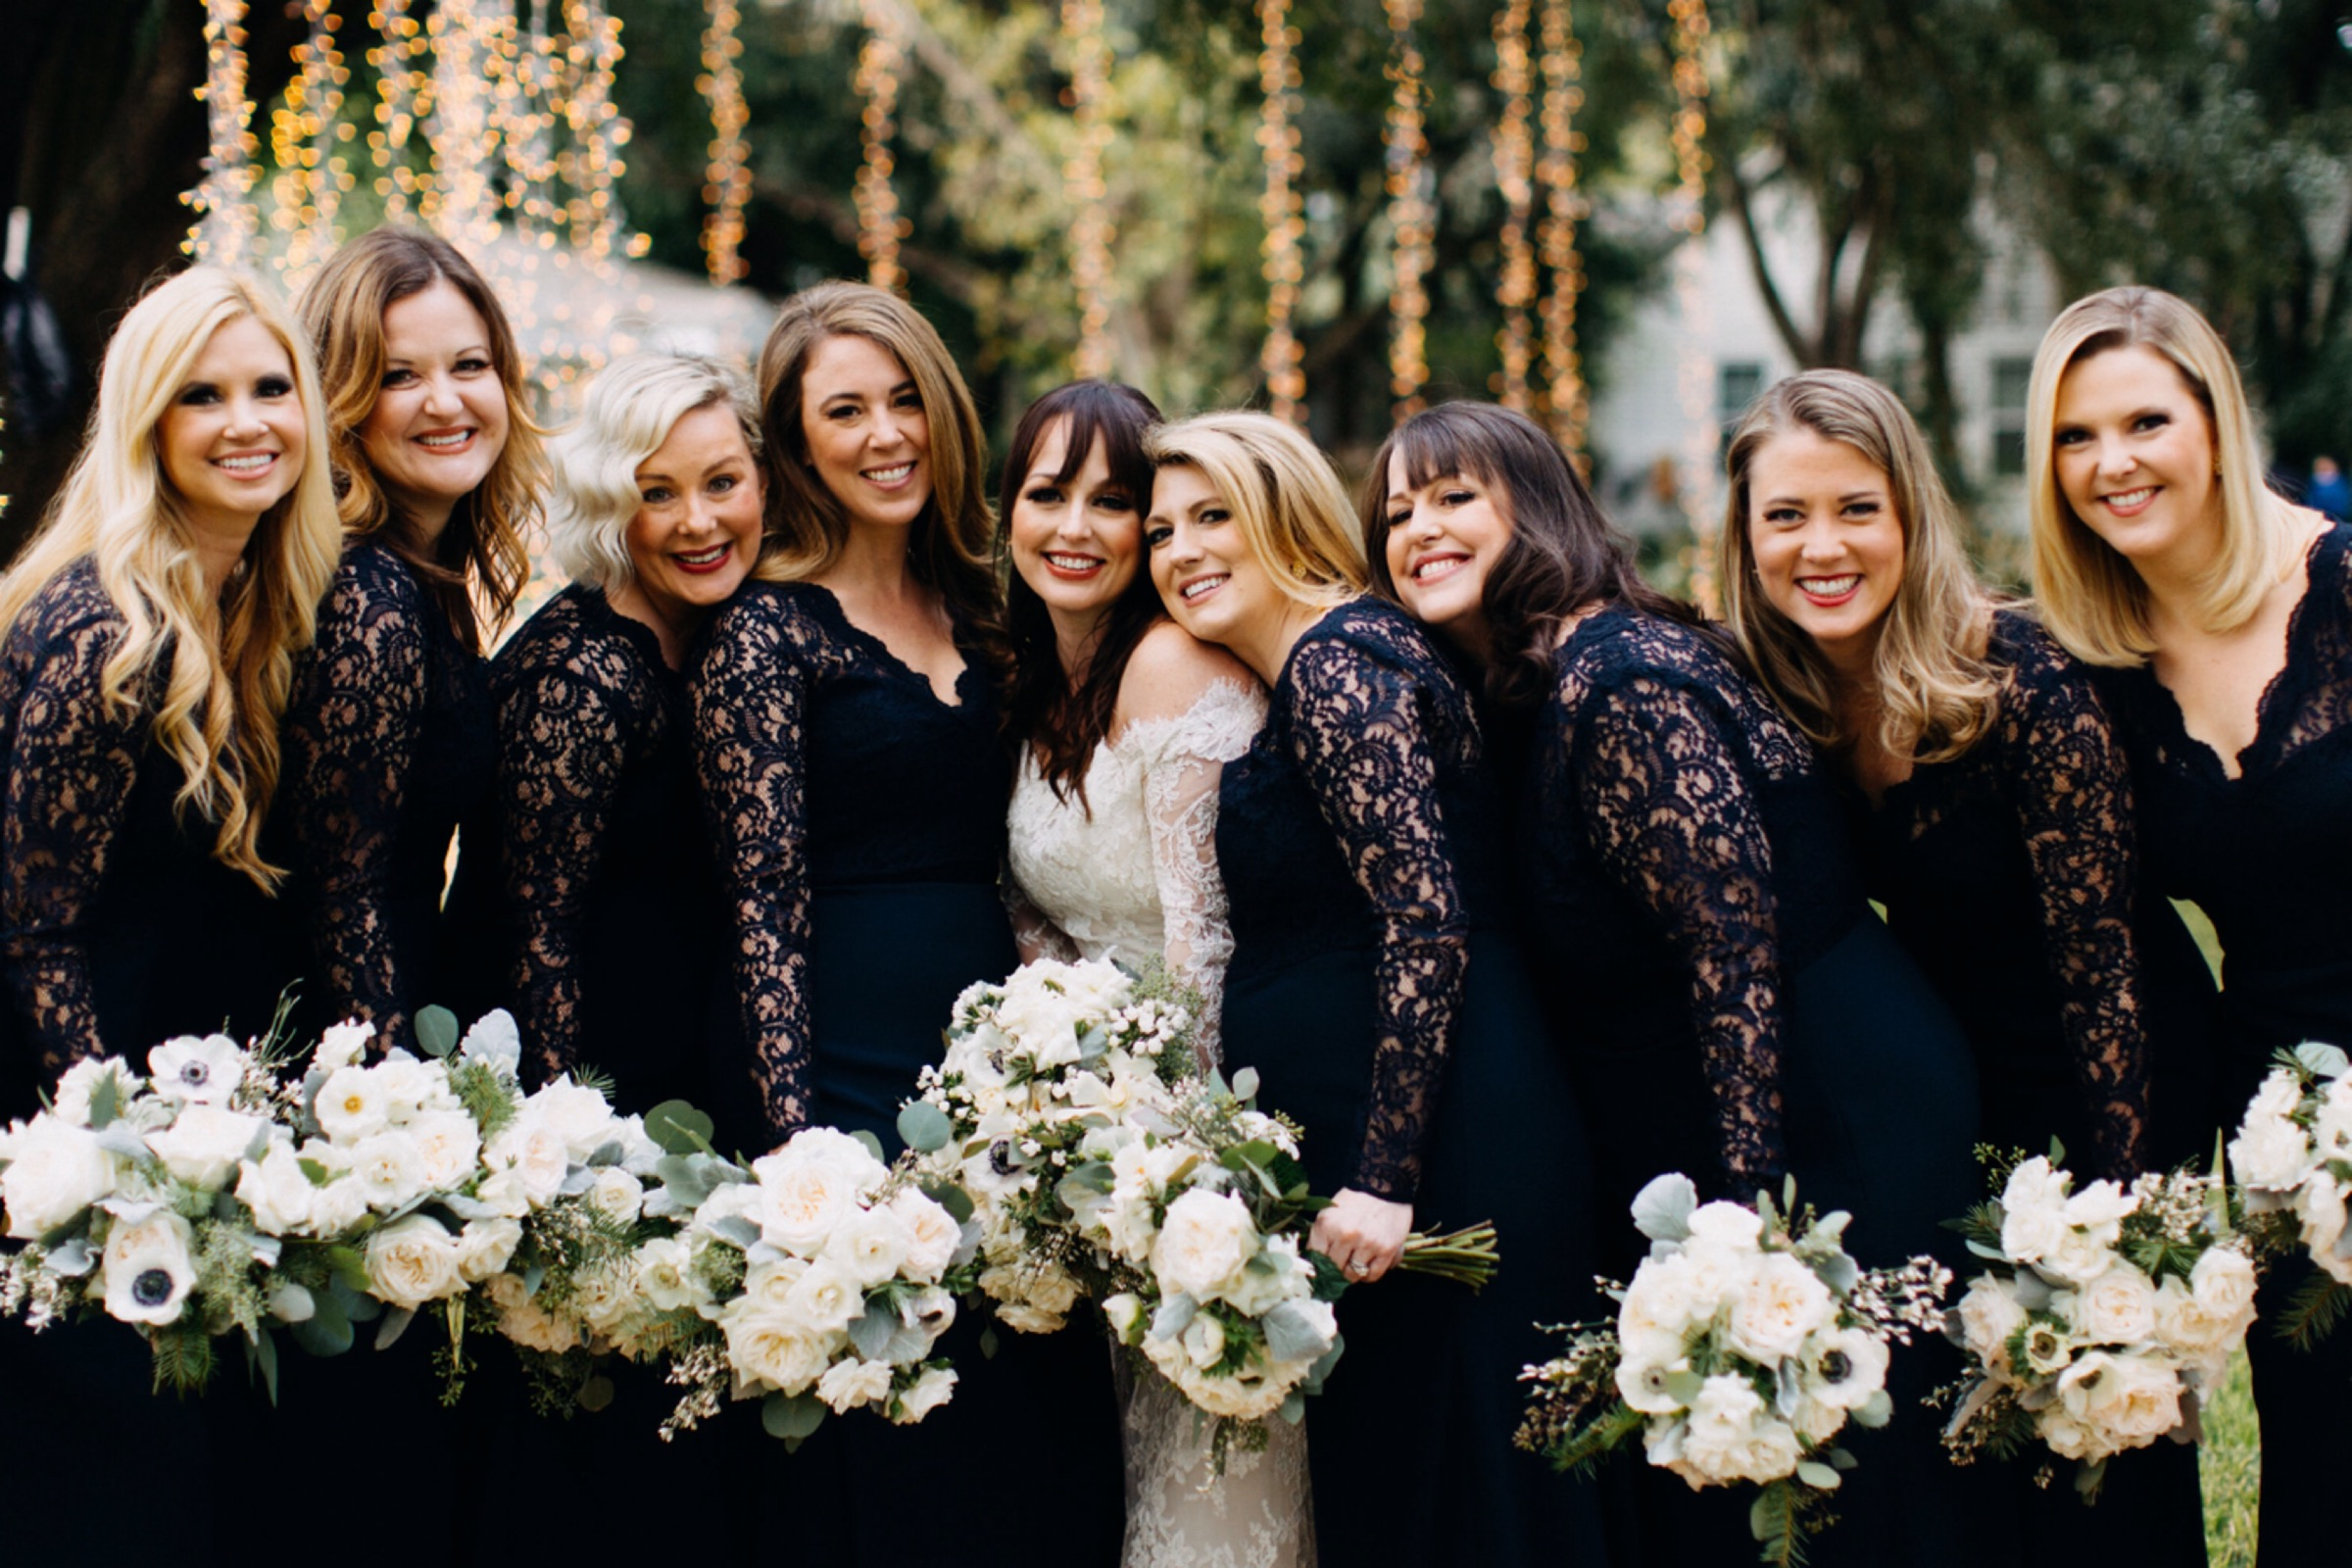 Black bridesmaid dresses brings a unique and stunning twist for a winter wedding l www.avenueievents.com.jpeg